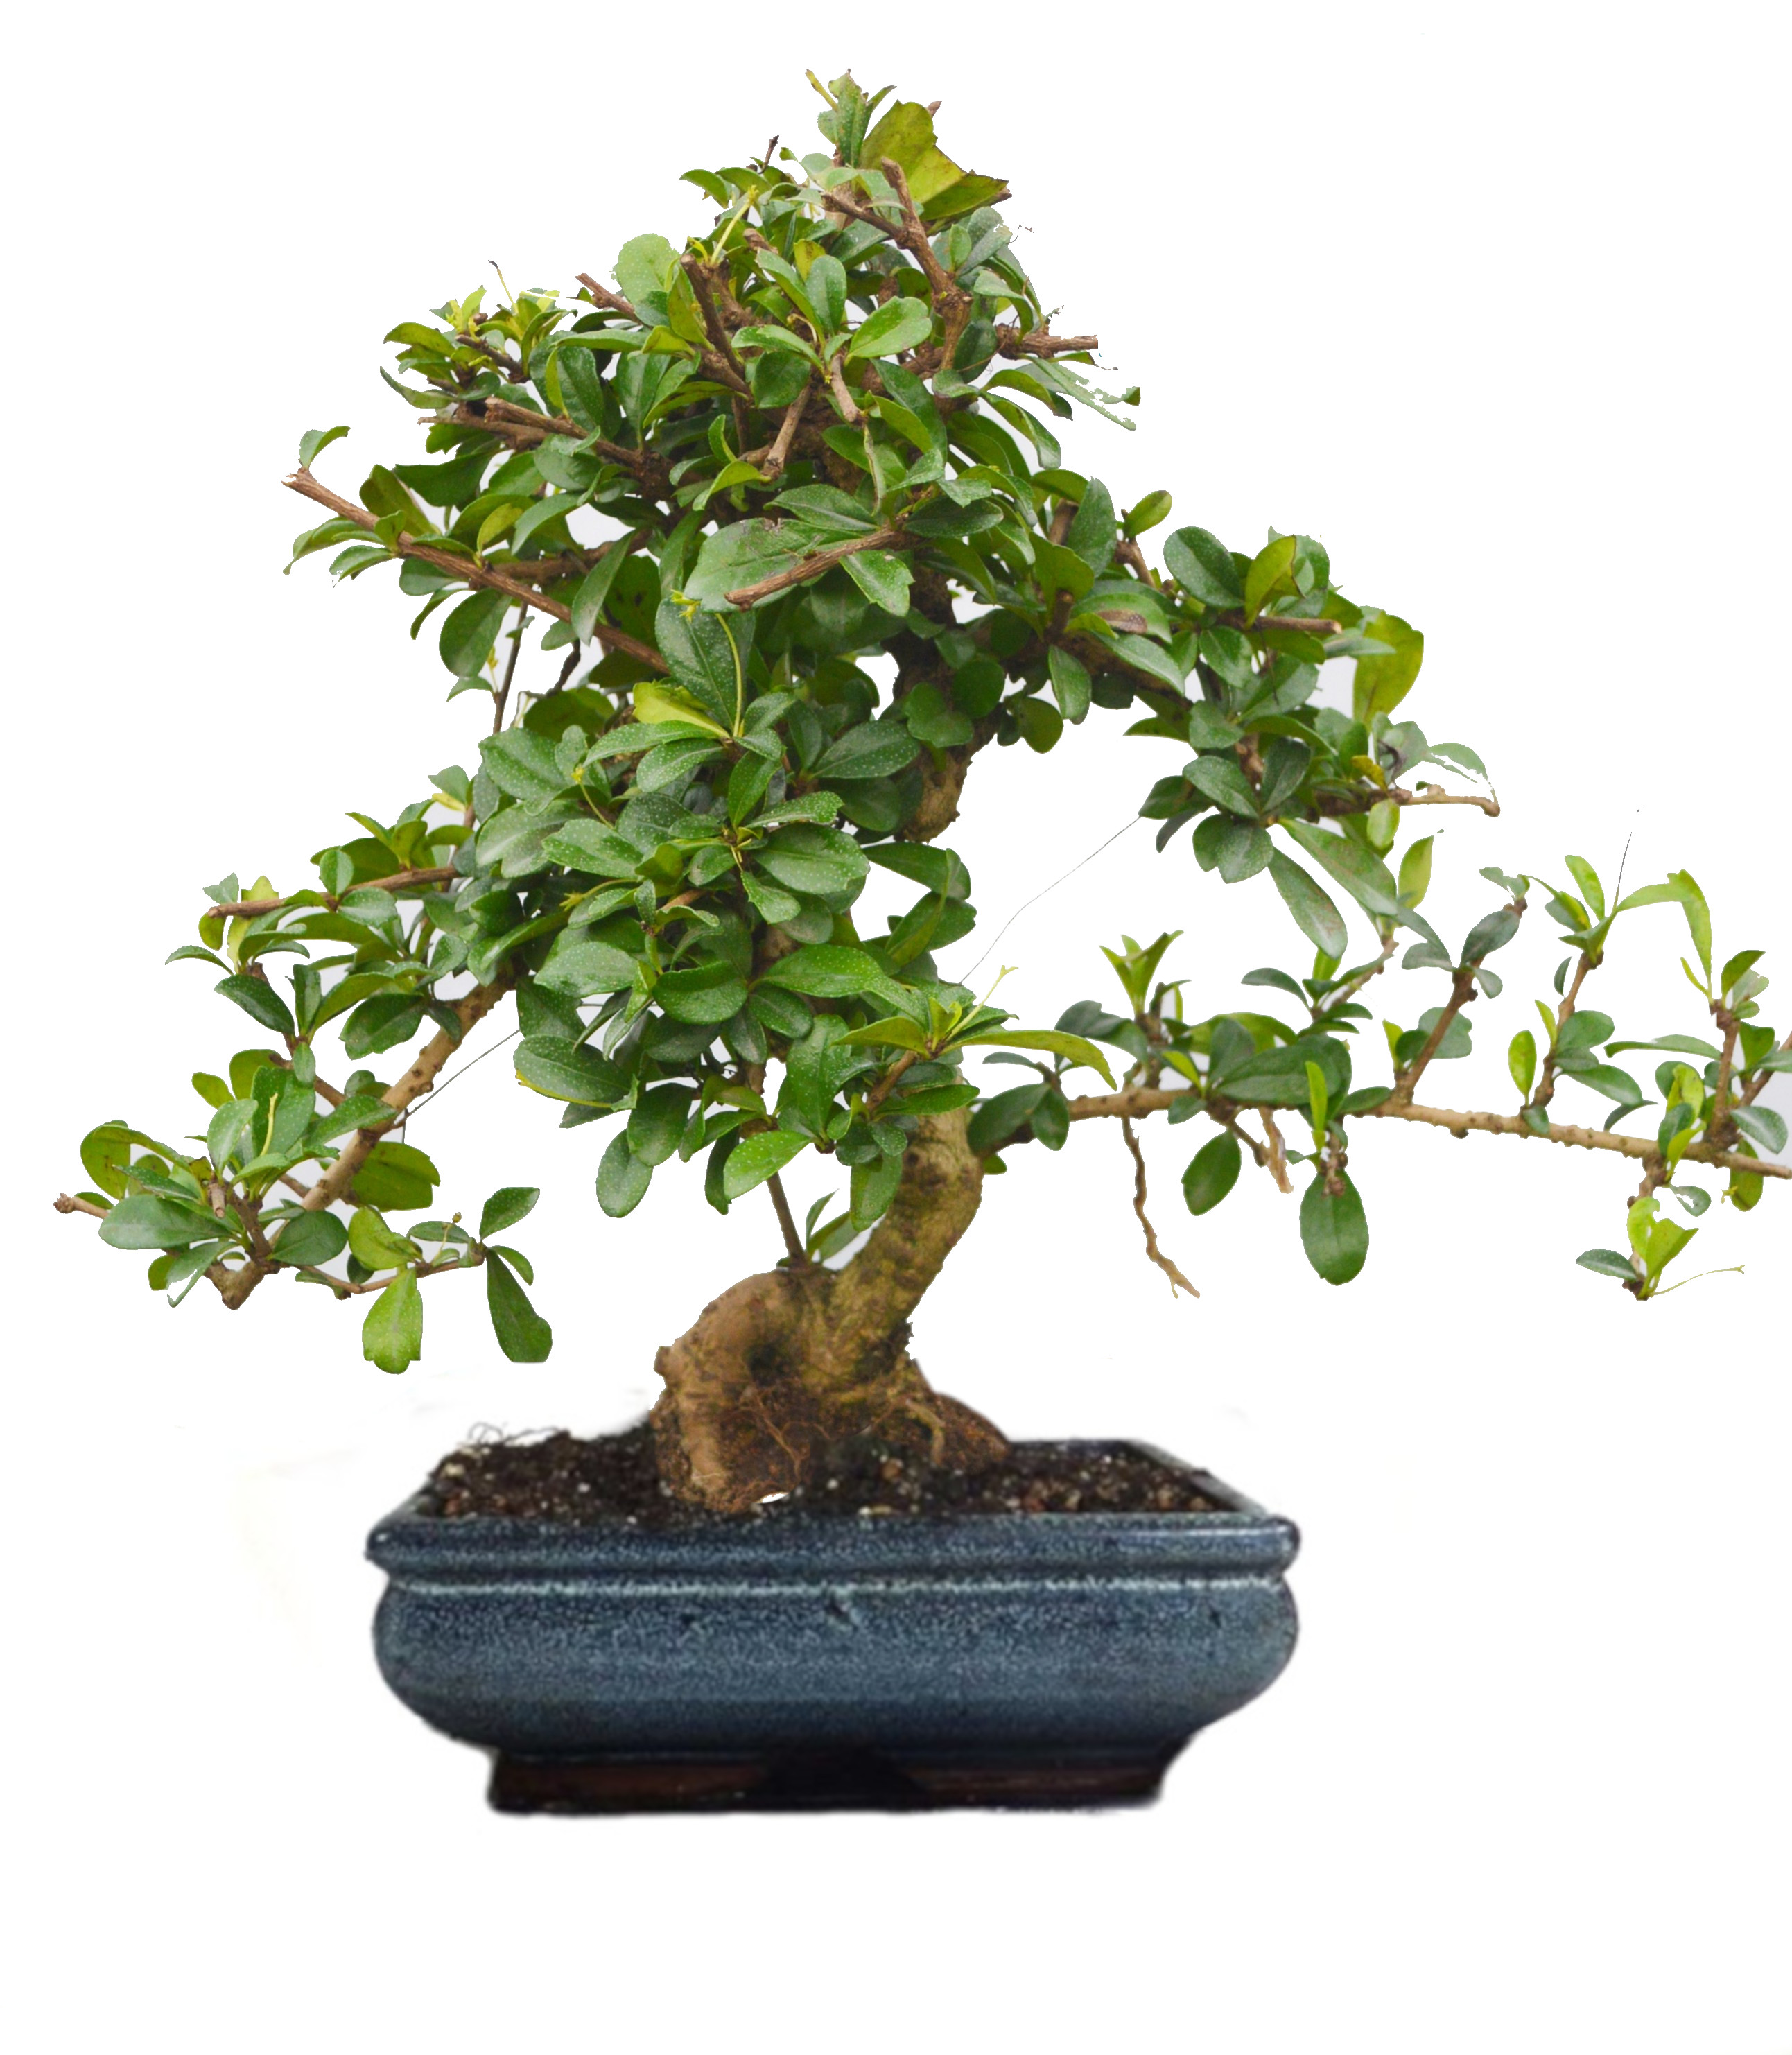 Carmona Bonsai Plant in Ceramic Pot – 9 Yrs Old